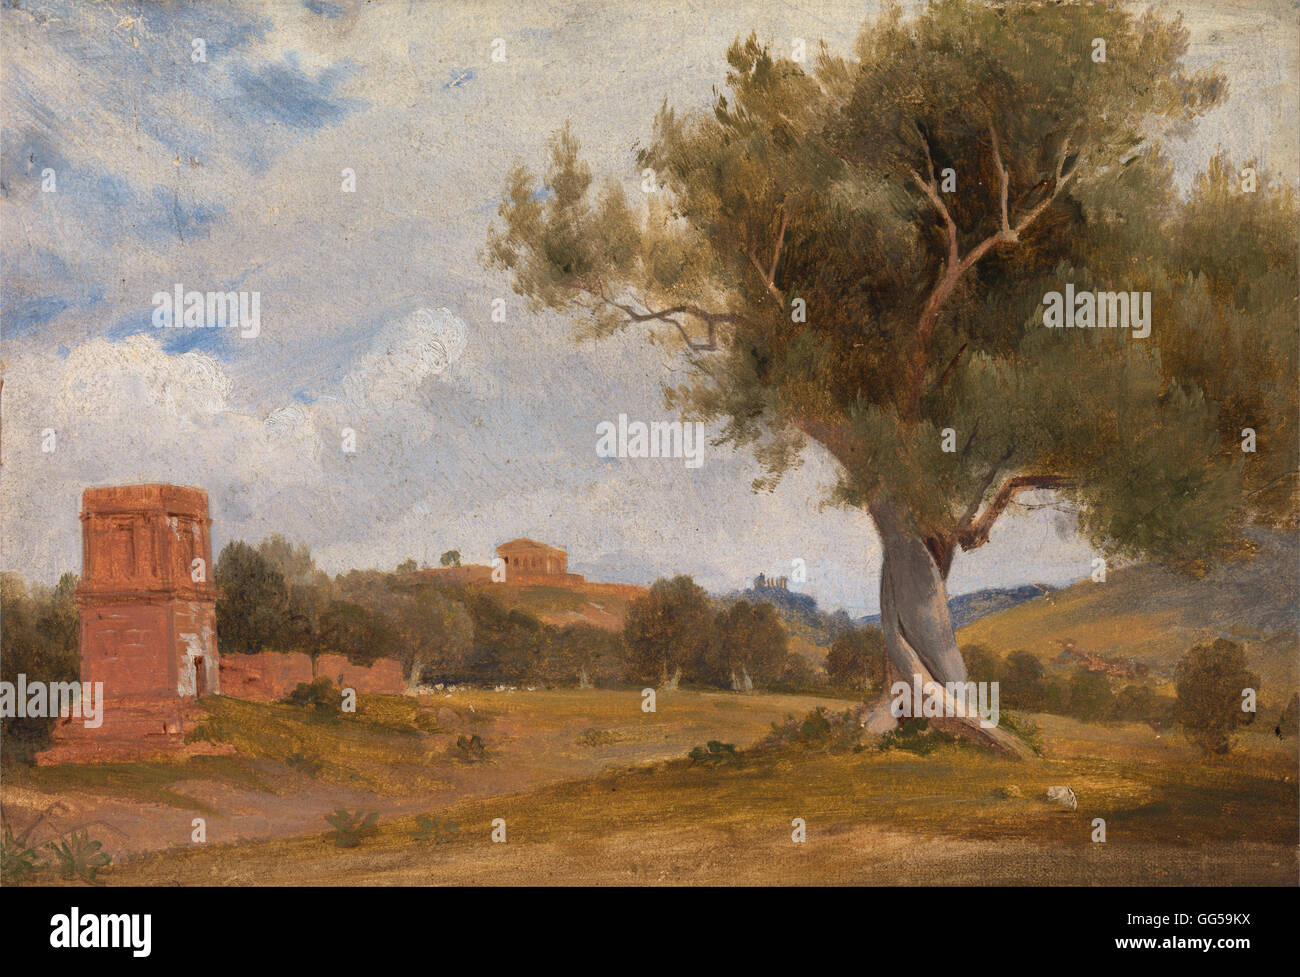 Charles Lock Eastlake - A View at Girgenti in Sicily with the Temple of Concord and Juno - Stock Image